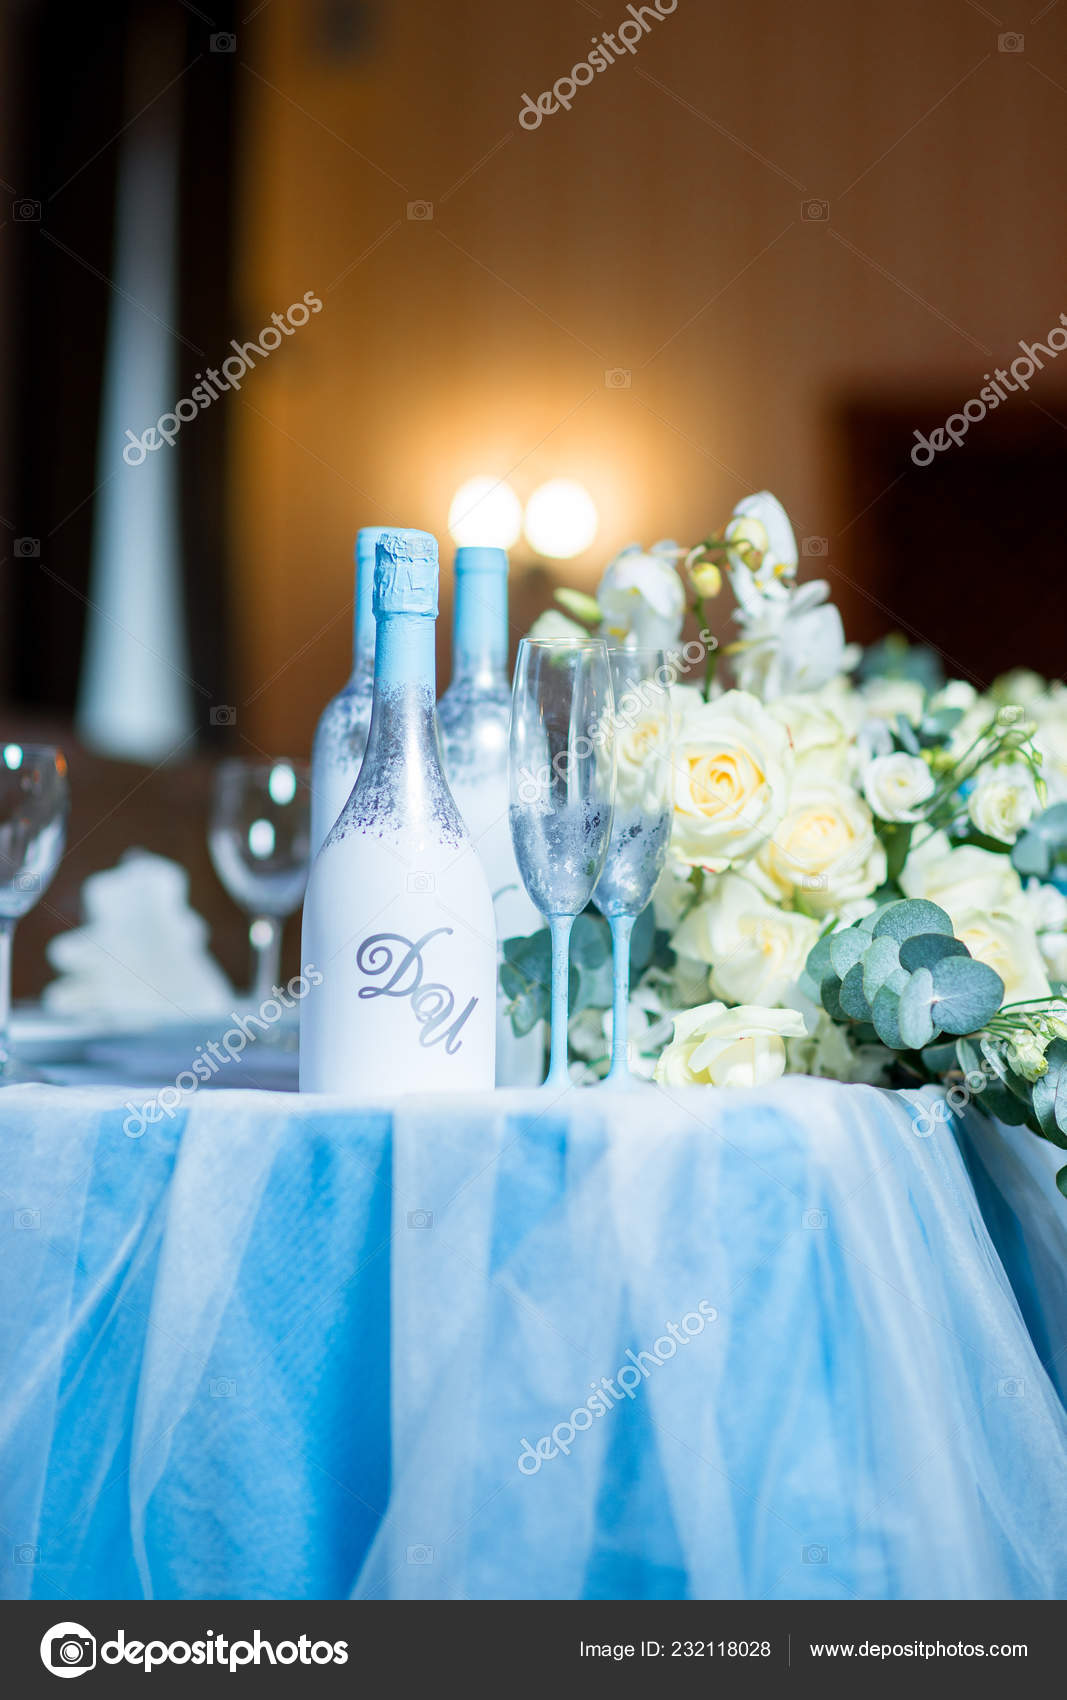 Groovy Diy Wedding Decor Table Centerpieces Wine Bottles Wrapped Interior Design Ideas Apansoteloinfo